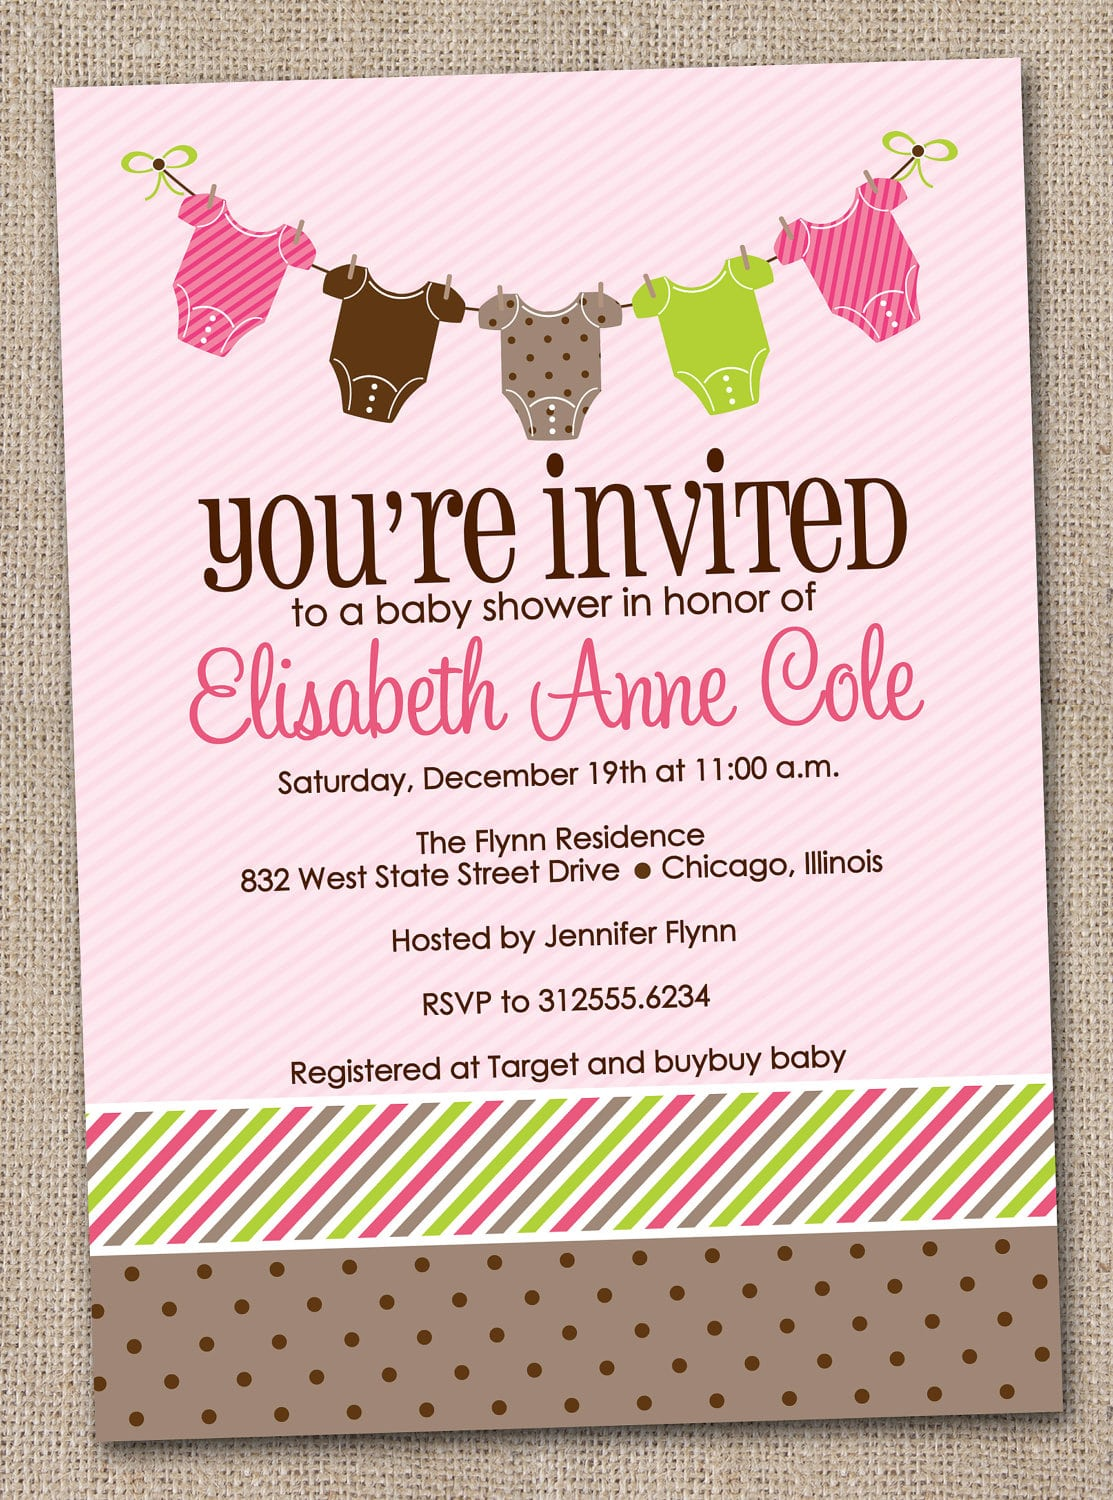 Welcome baby party invitation wording mickey mouse invitations welcome baby party invitation wording stopboris Choice Image